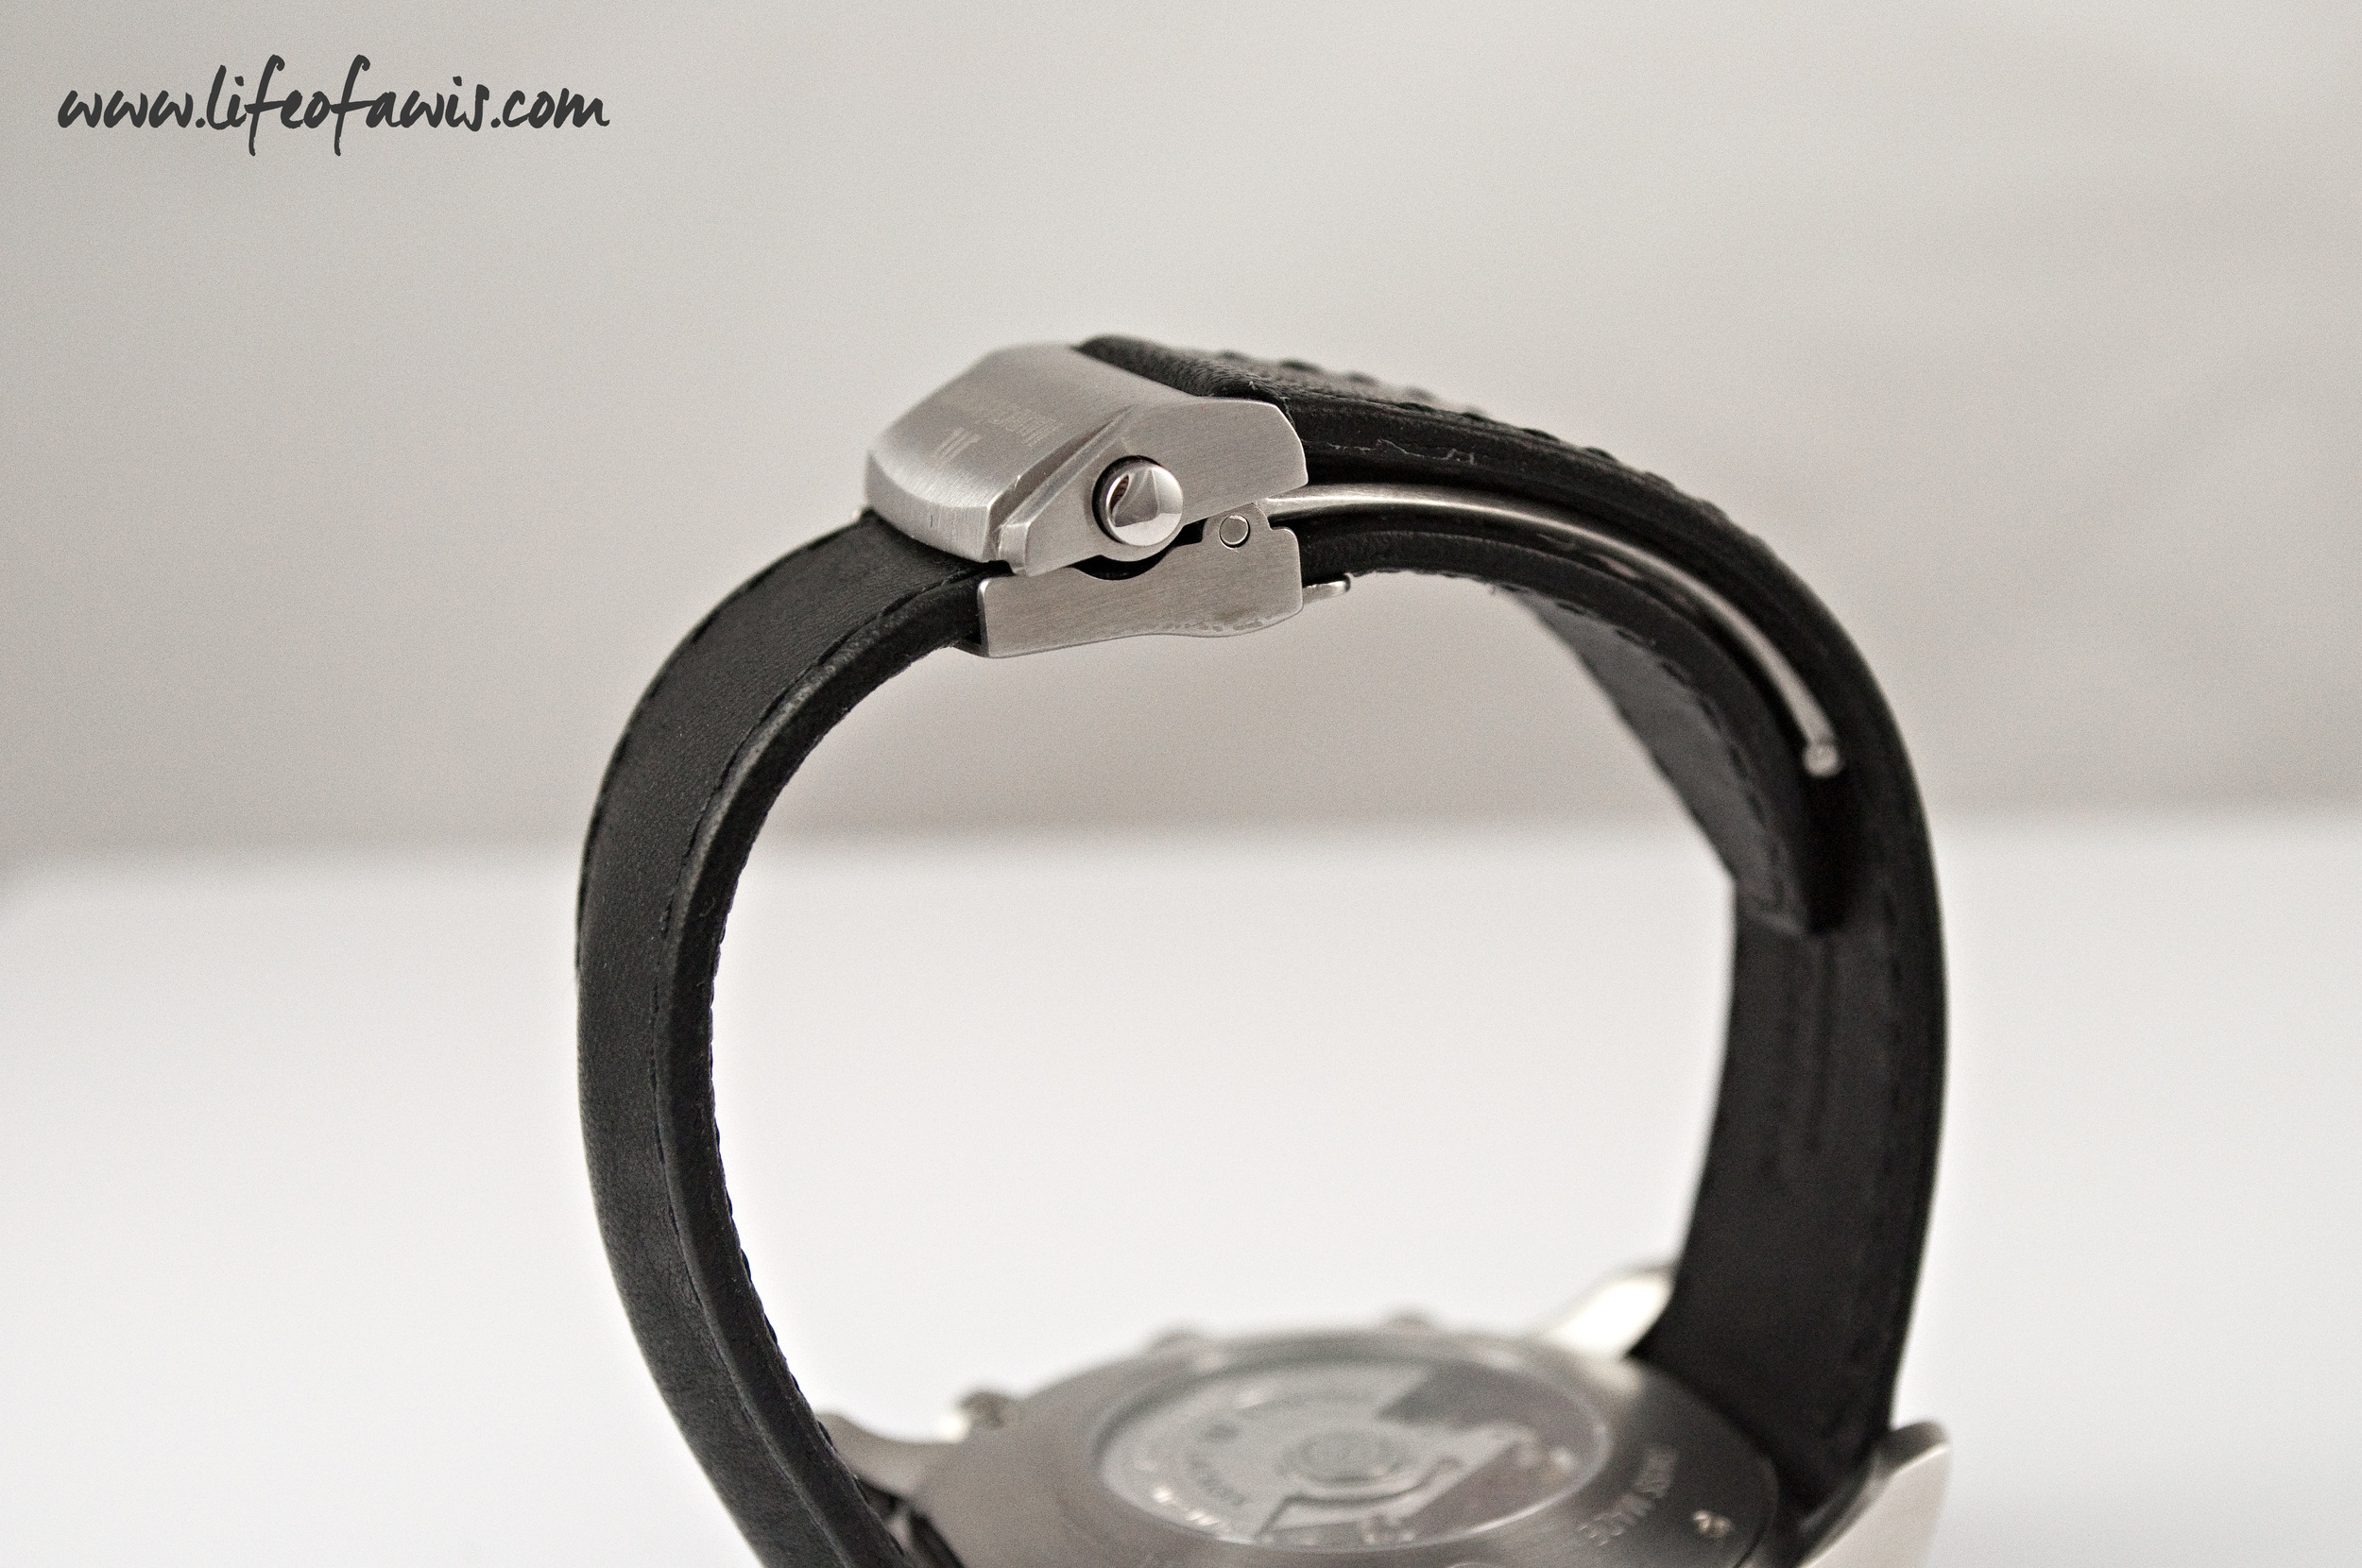 The top part of the deployant buckle moves, which creates a visible gap.